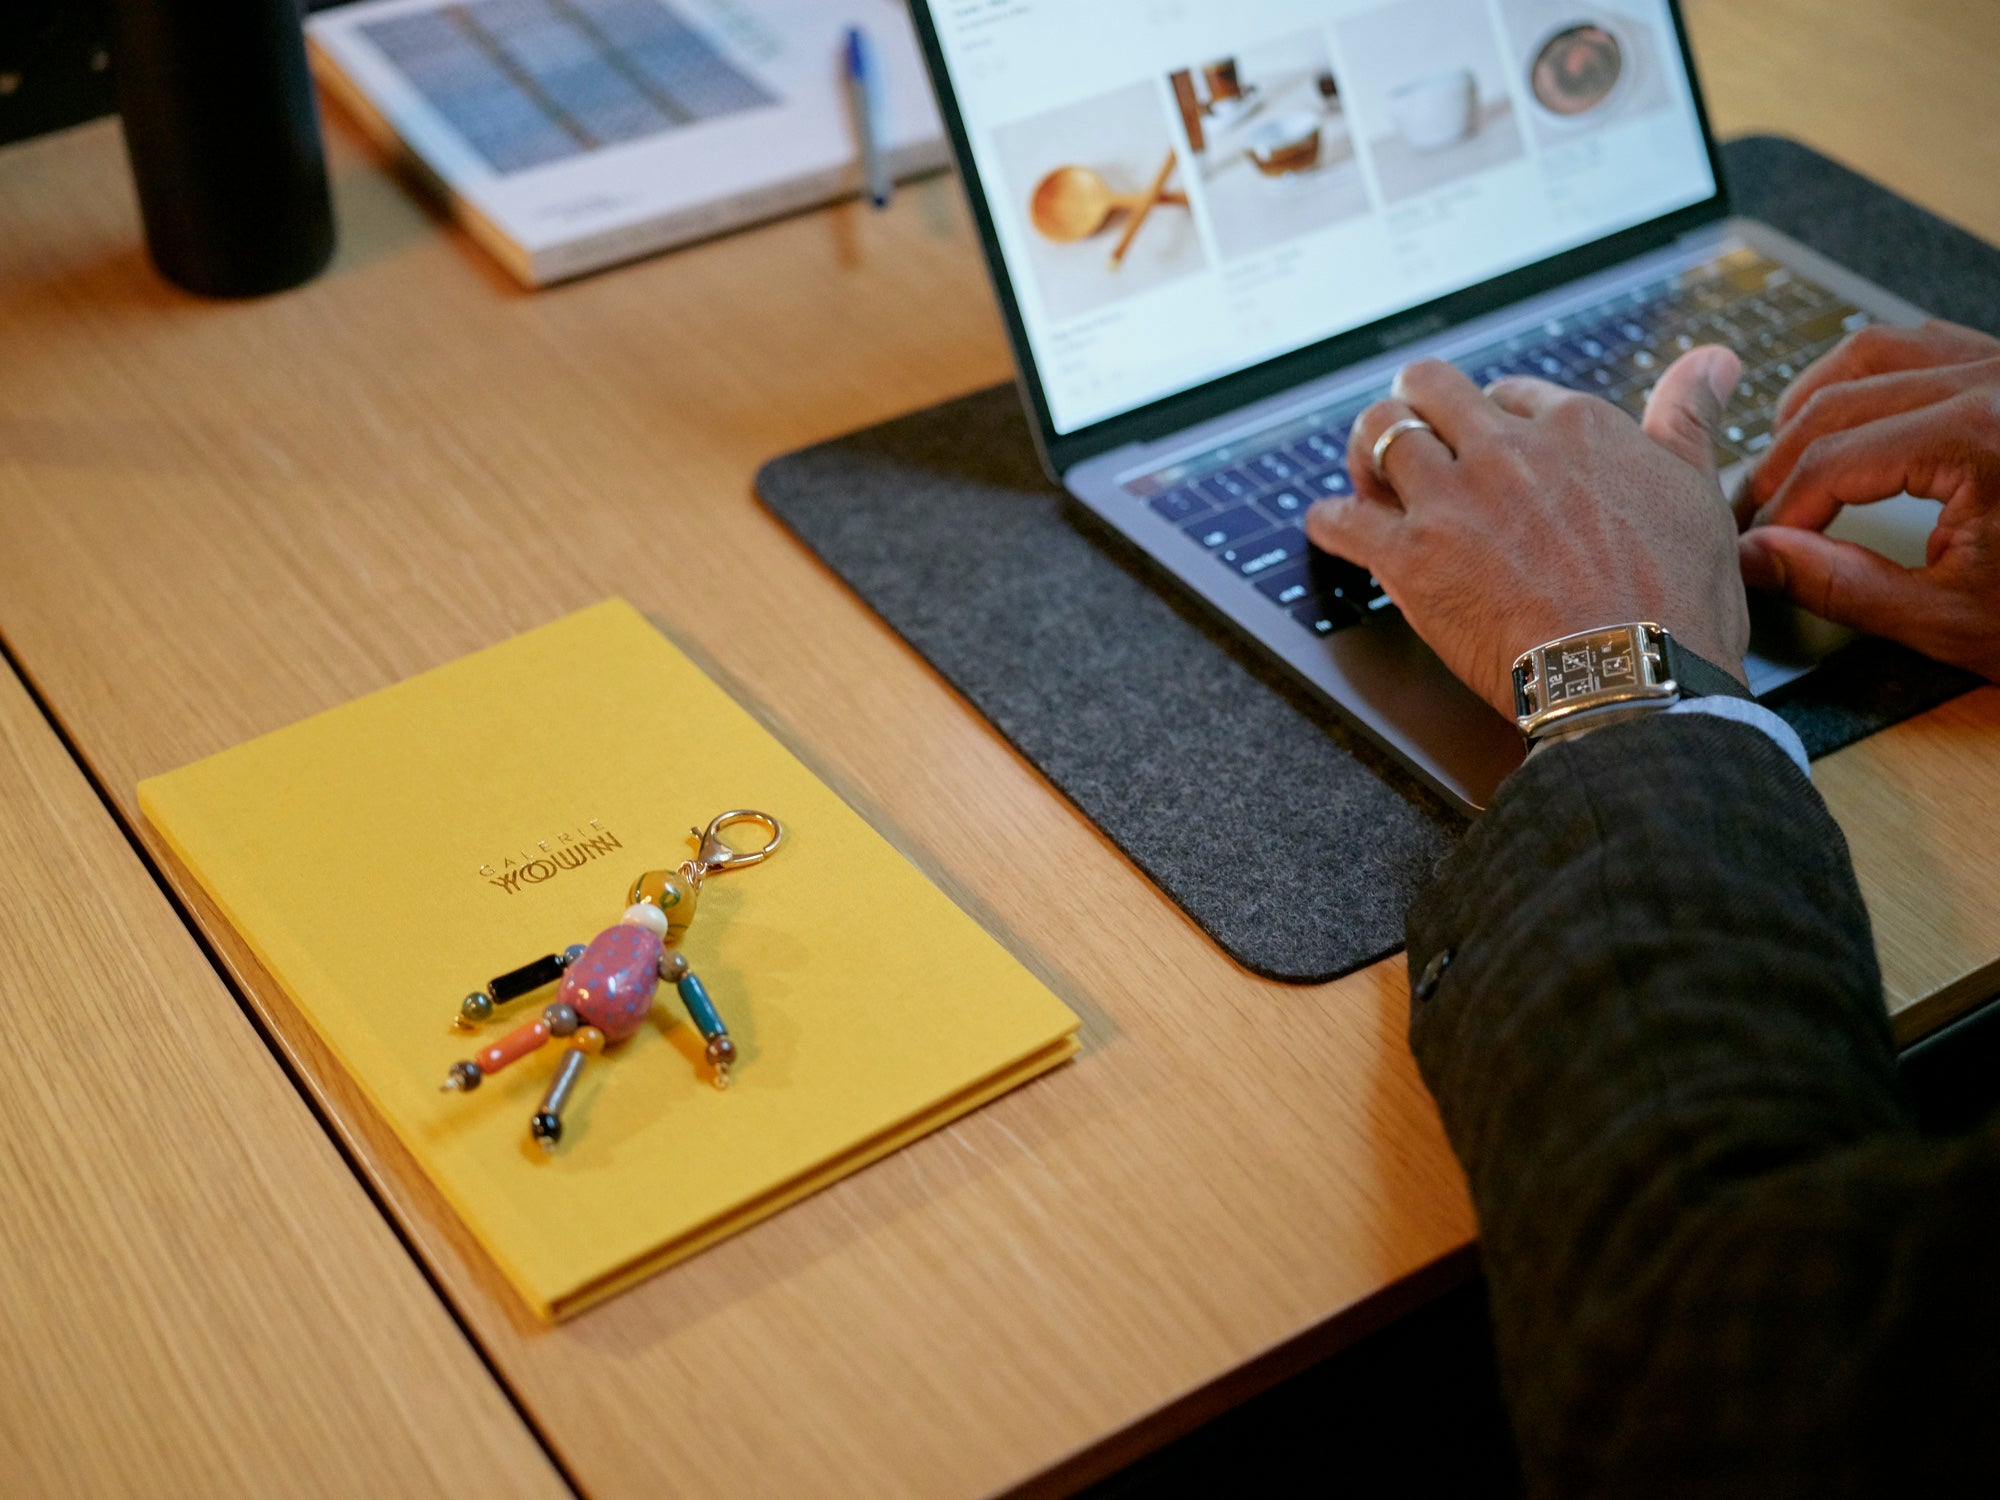 Close up of hands on a computer with a notebook and keychain on the table next to the computer